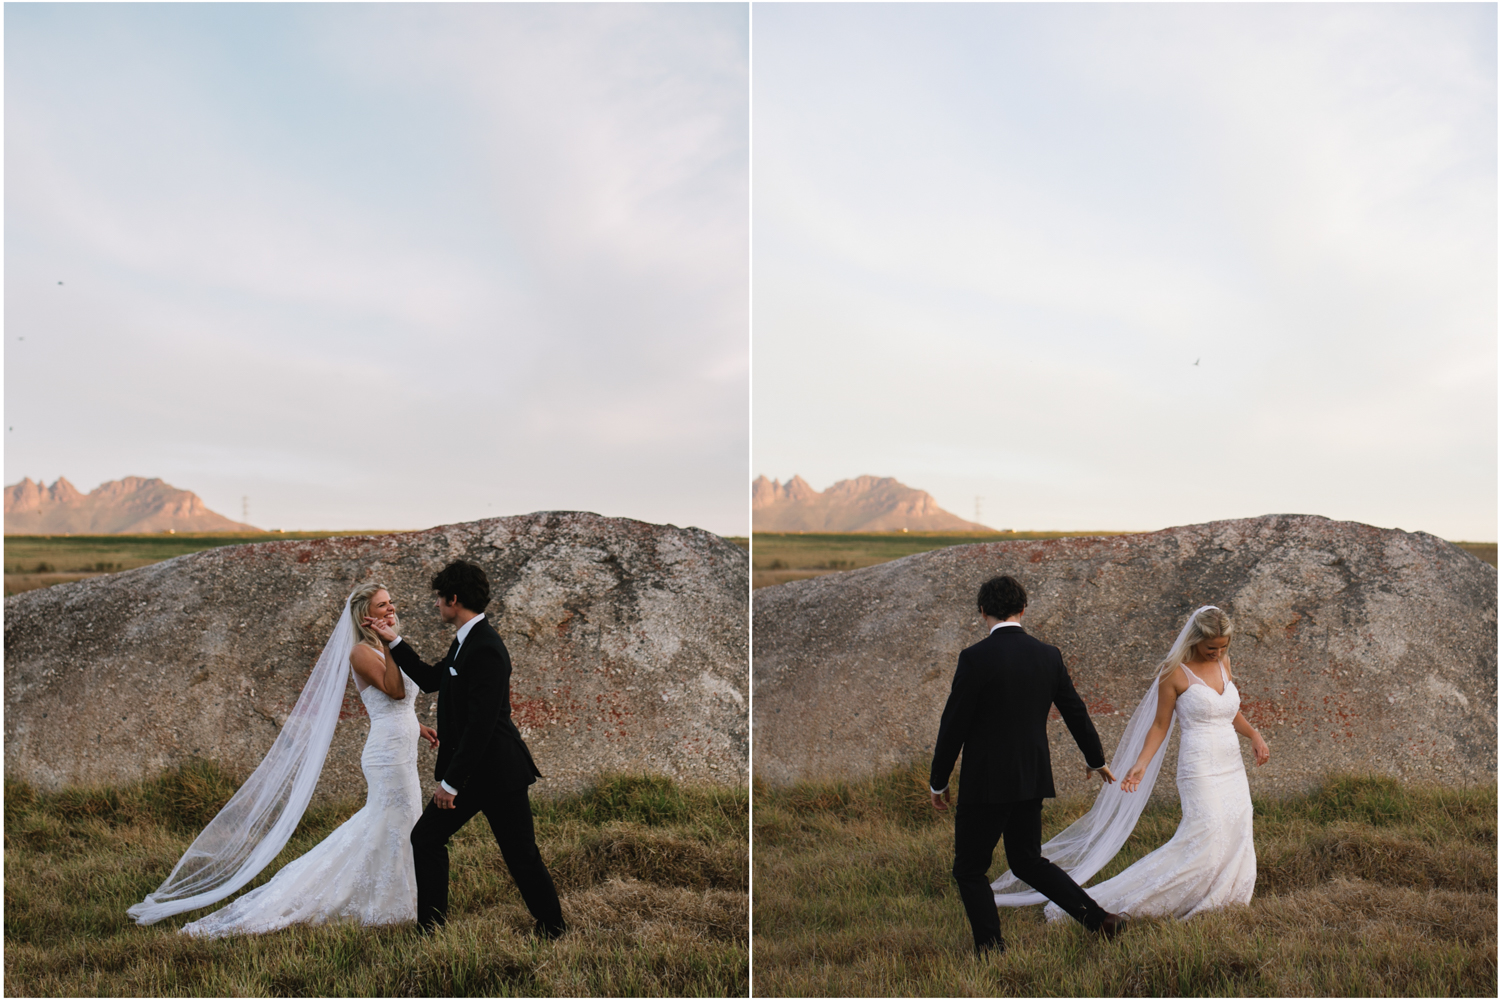 heisvisual-wedding-photographers-documentary-spier-south-africa010.jpg